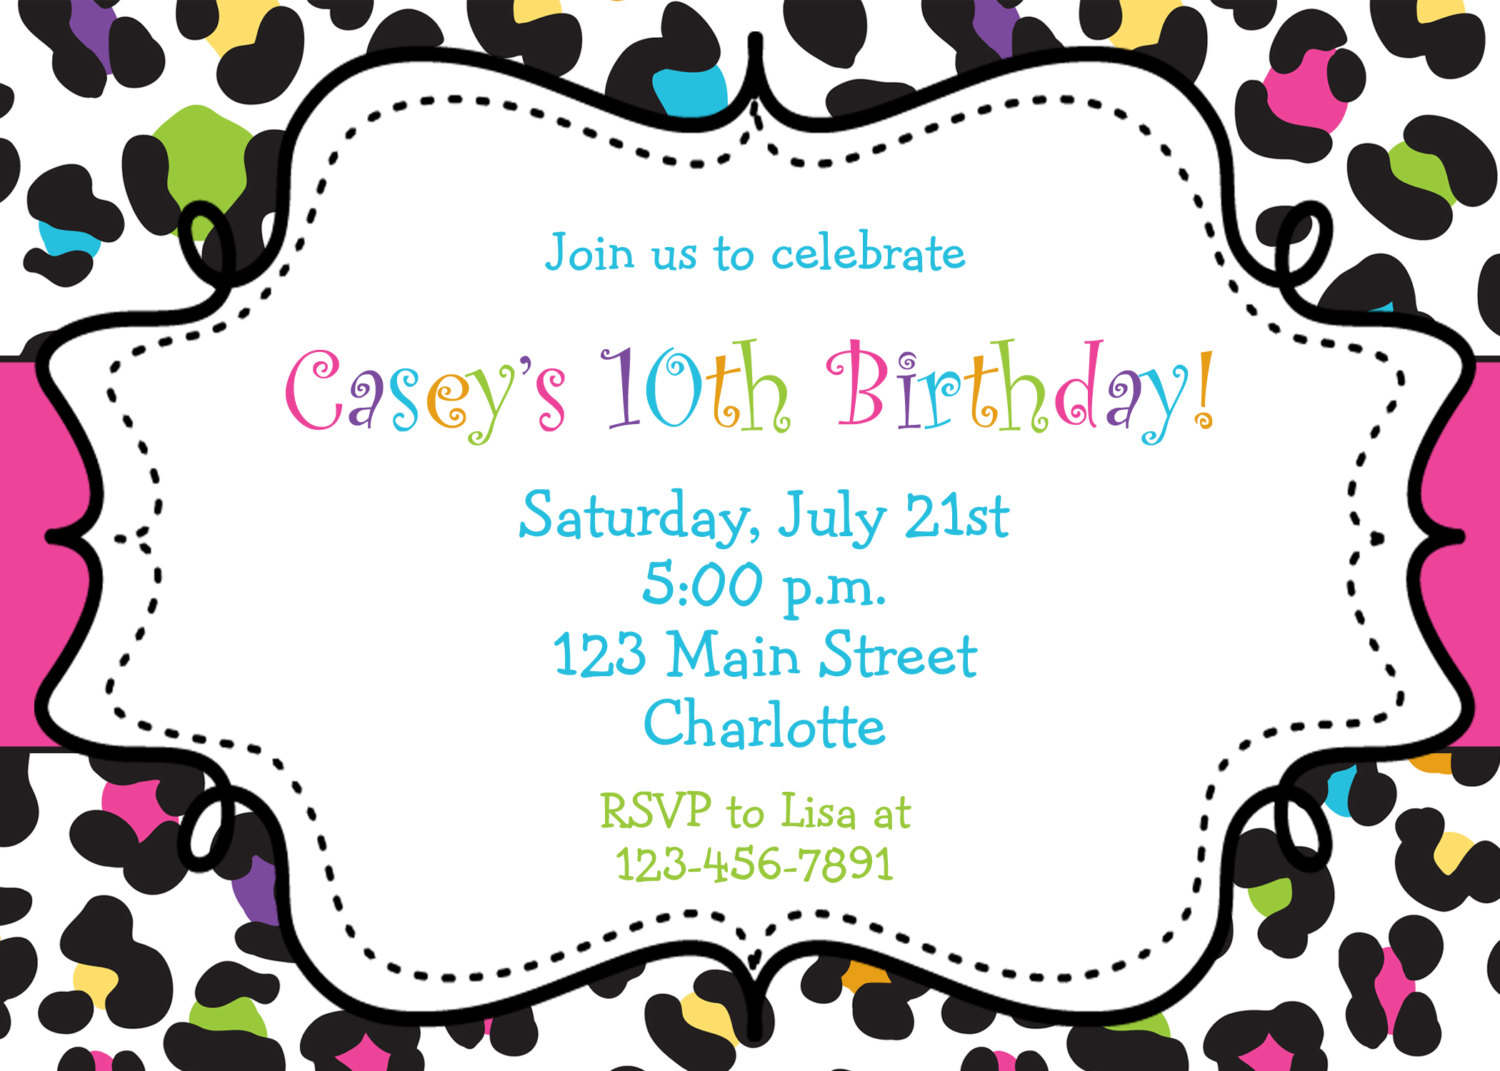 free birthday party invitation templates with photo ; girl_birthday_invitations_template_phml_free_download_10_birthday_invitations_template_best_in_2015_0